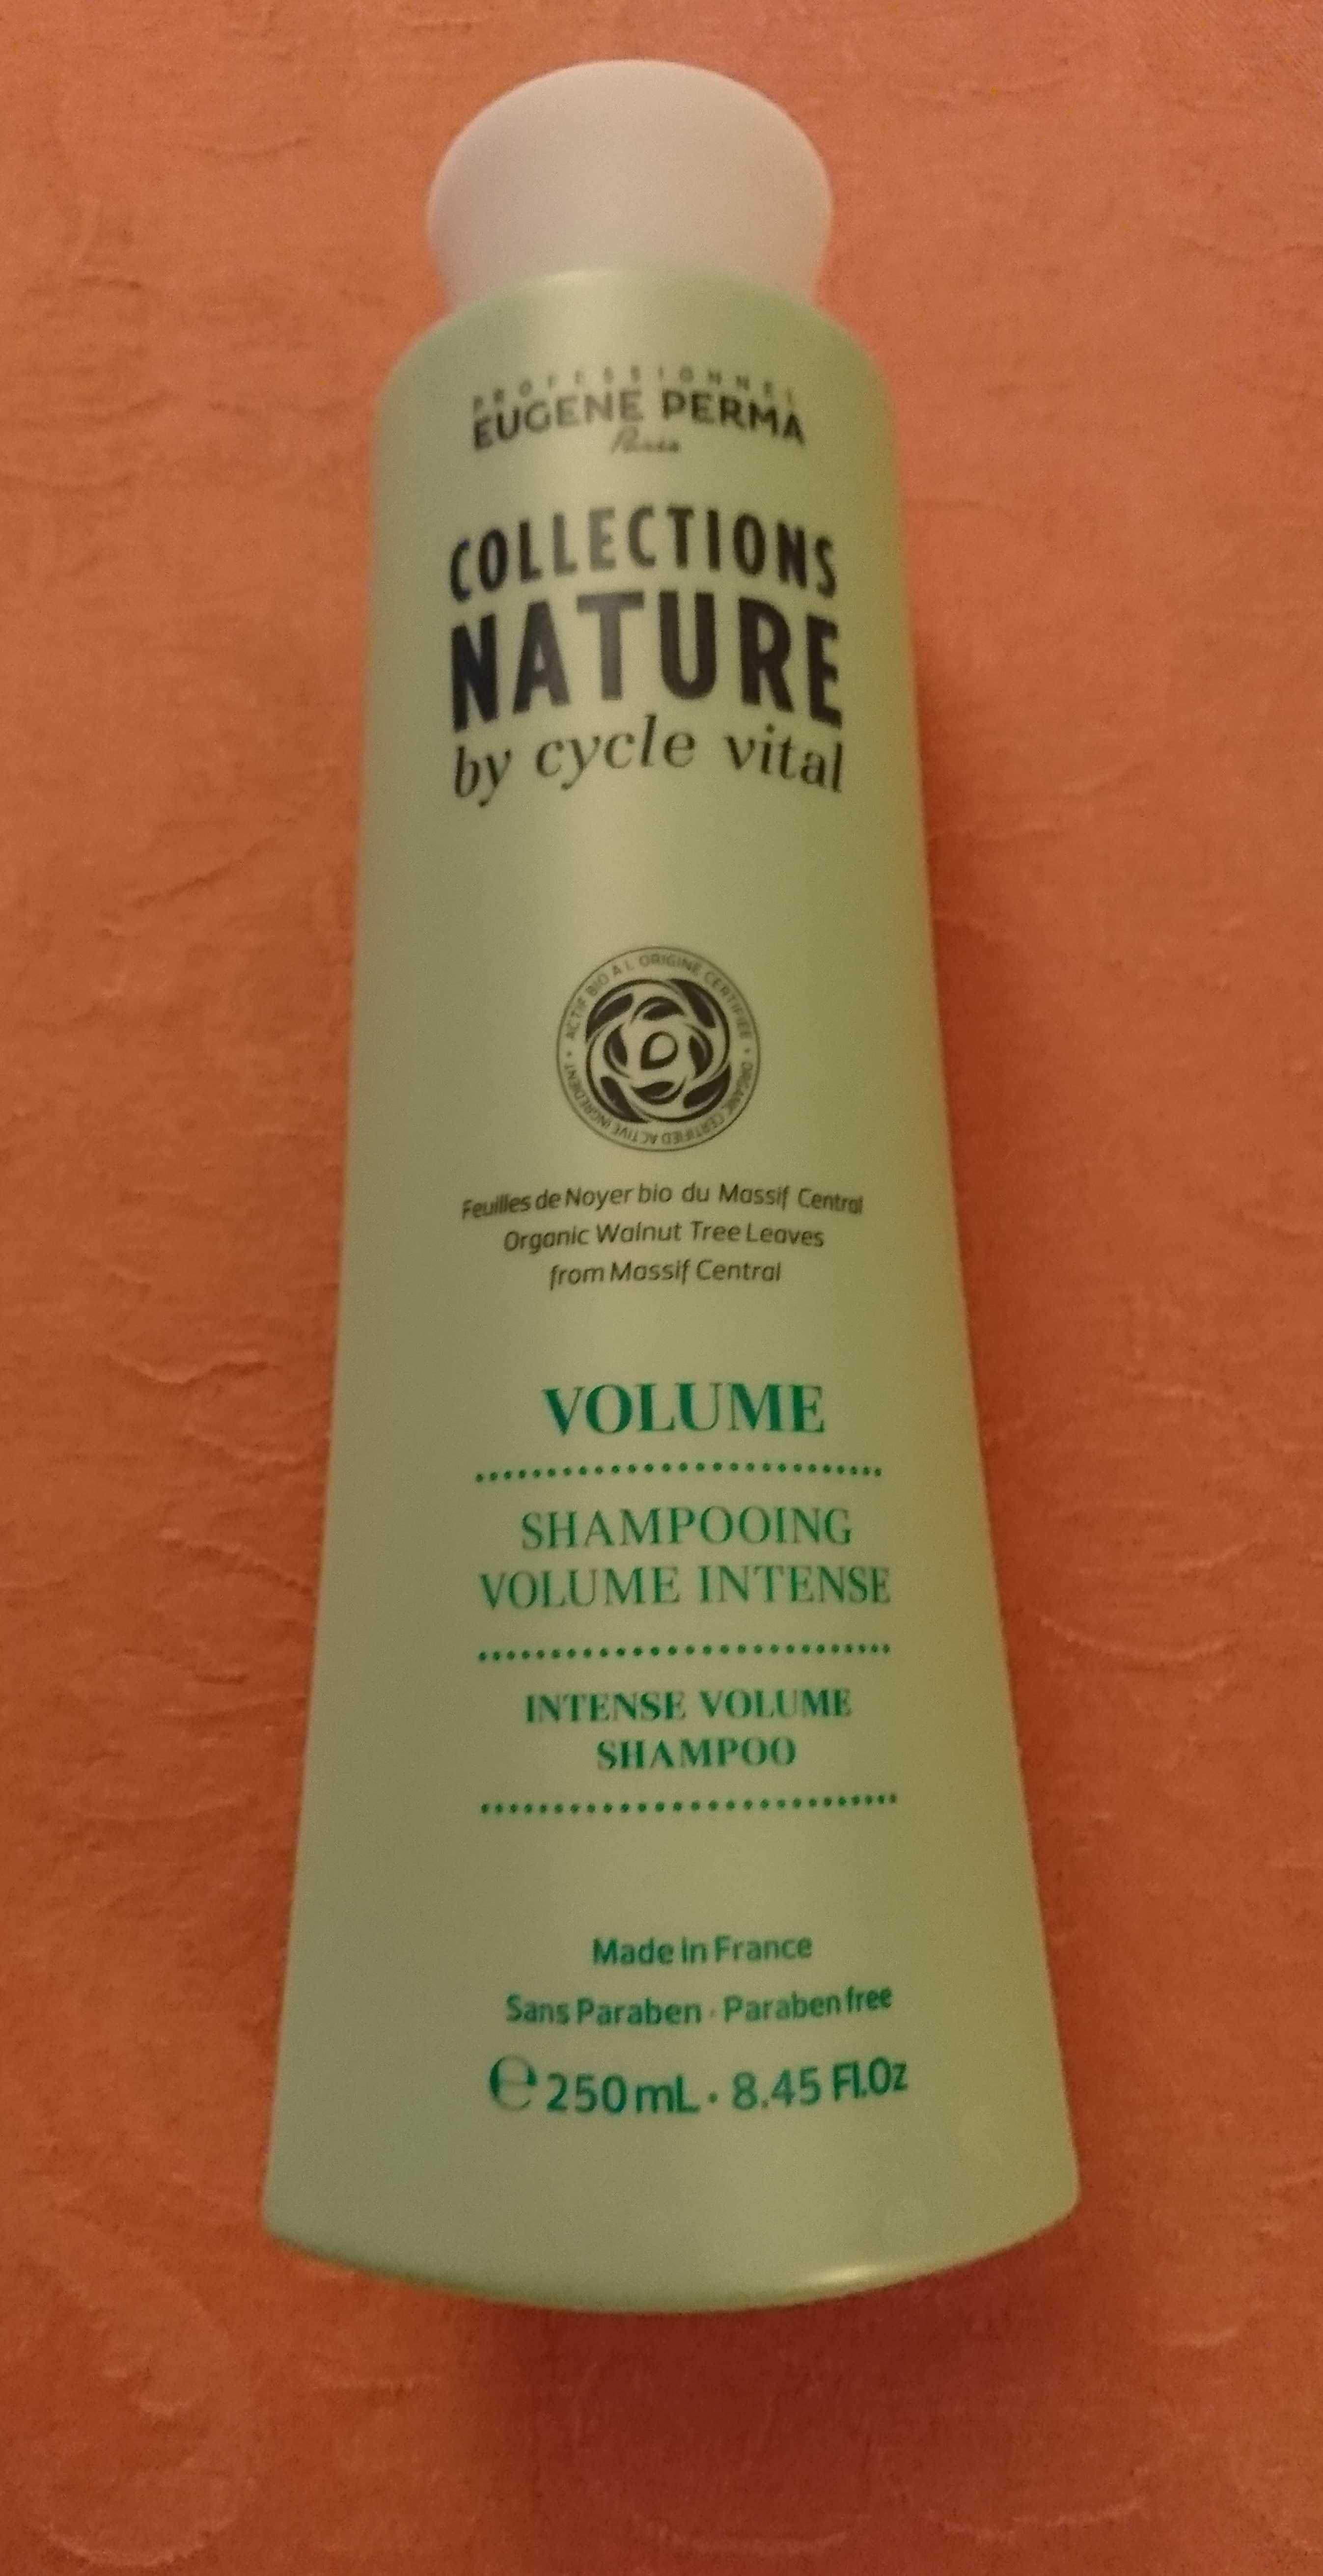 shampooing volume intense - Product